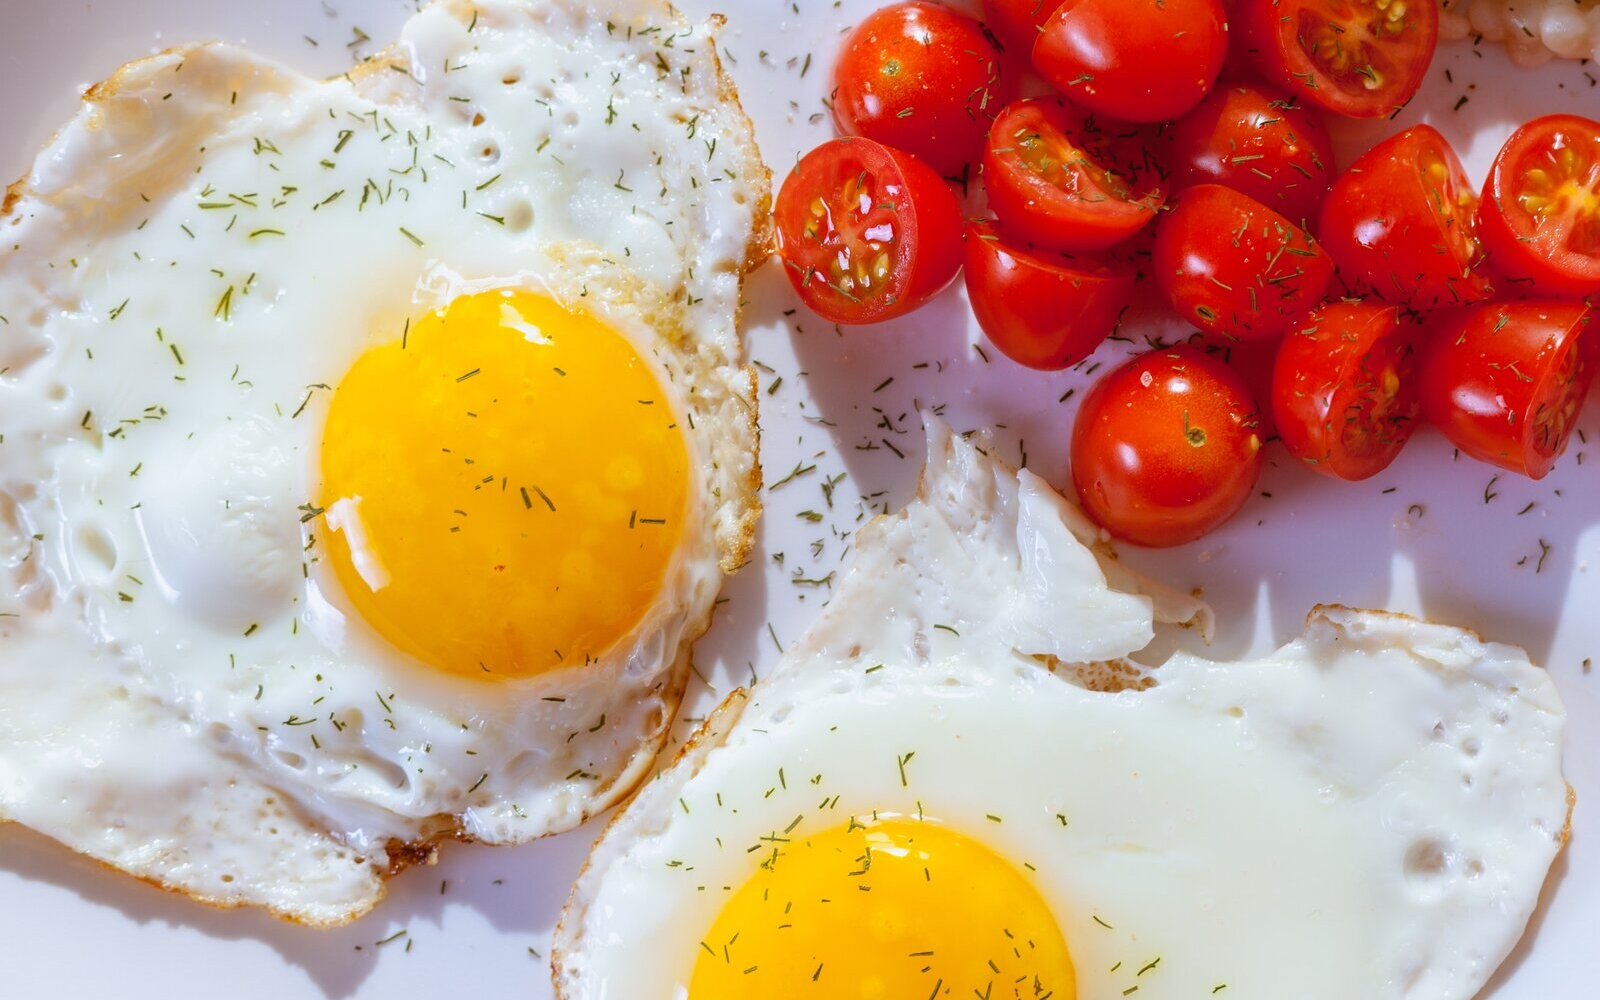 eggs and tomatoes on a plate